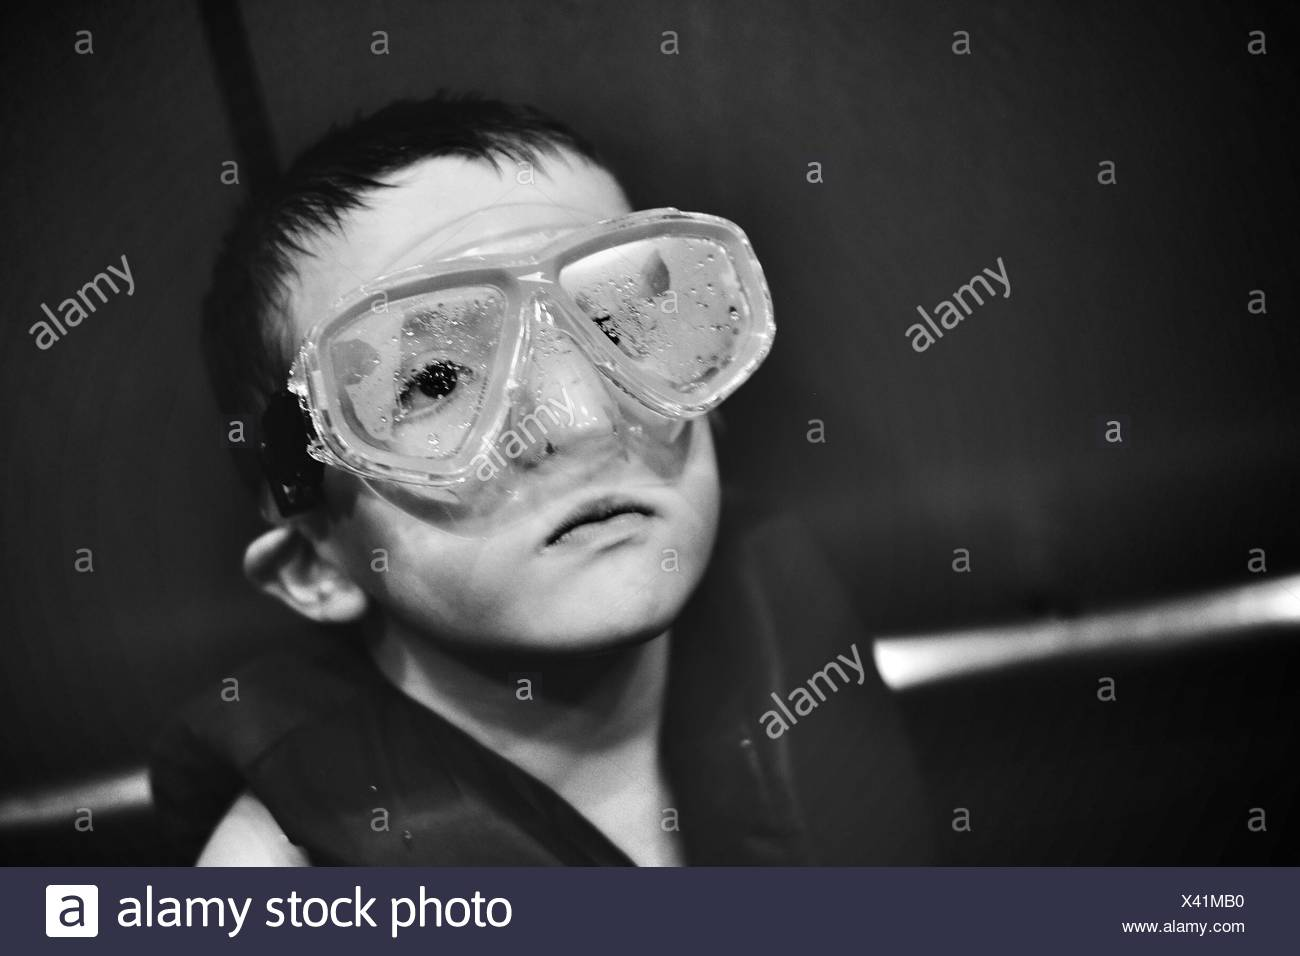 Close-Up Of Boy With Swimming Goggles - Stock Image